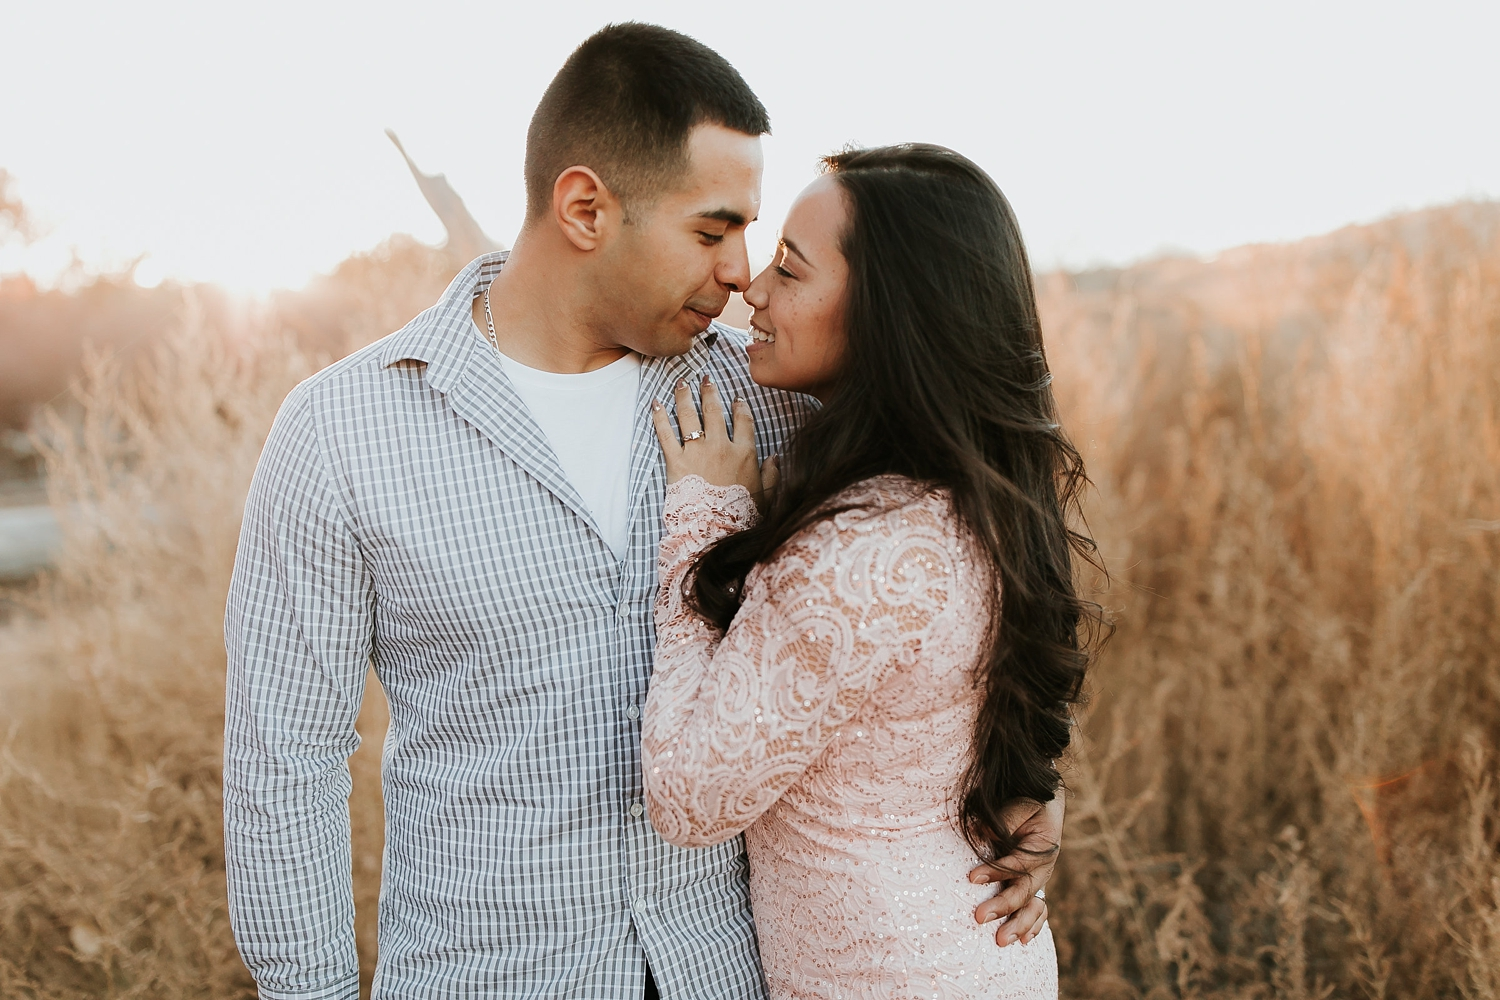 Alicia+lucia+photography+-+albuquerque+wedding+photographer+-+santa+fe+wedding+photography+-+new+mexico+wedding+photographer+-+albuquerque+winter+engagement+session_0007.jpg